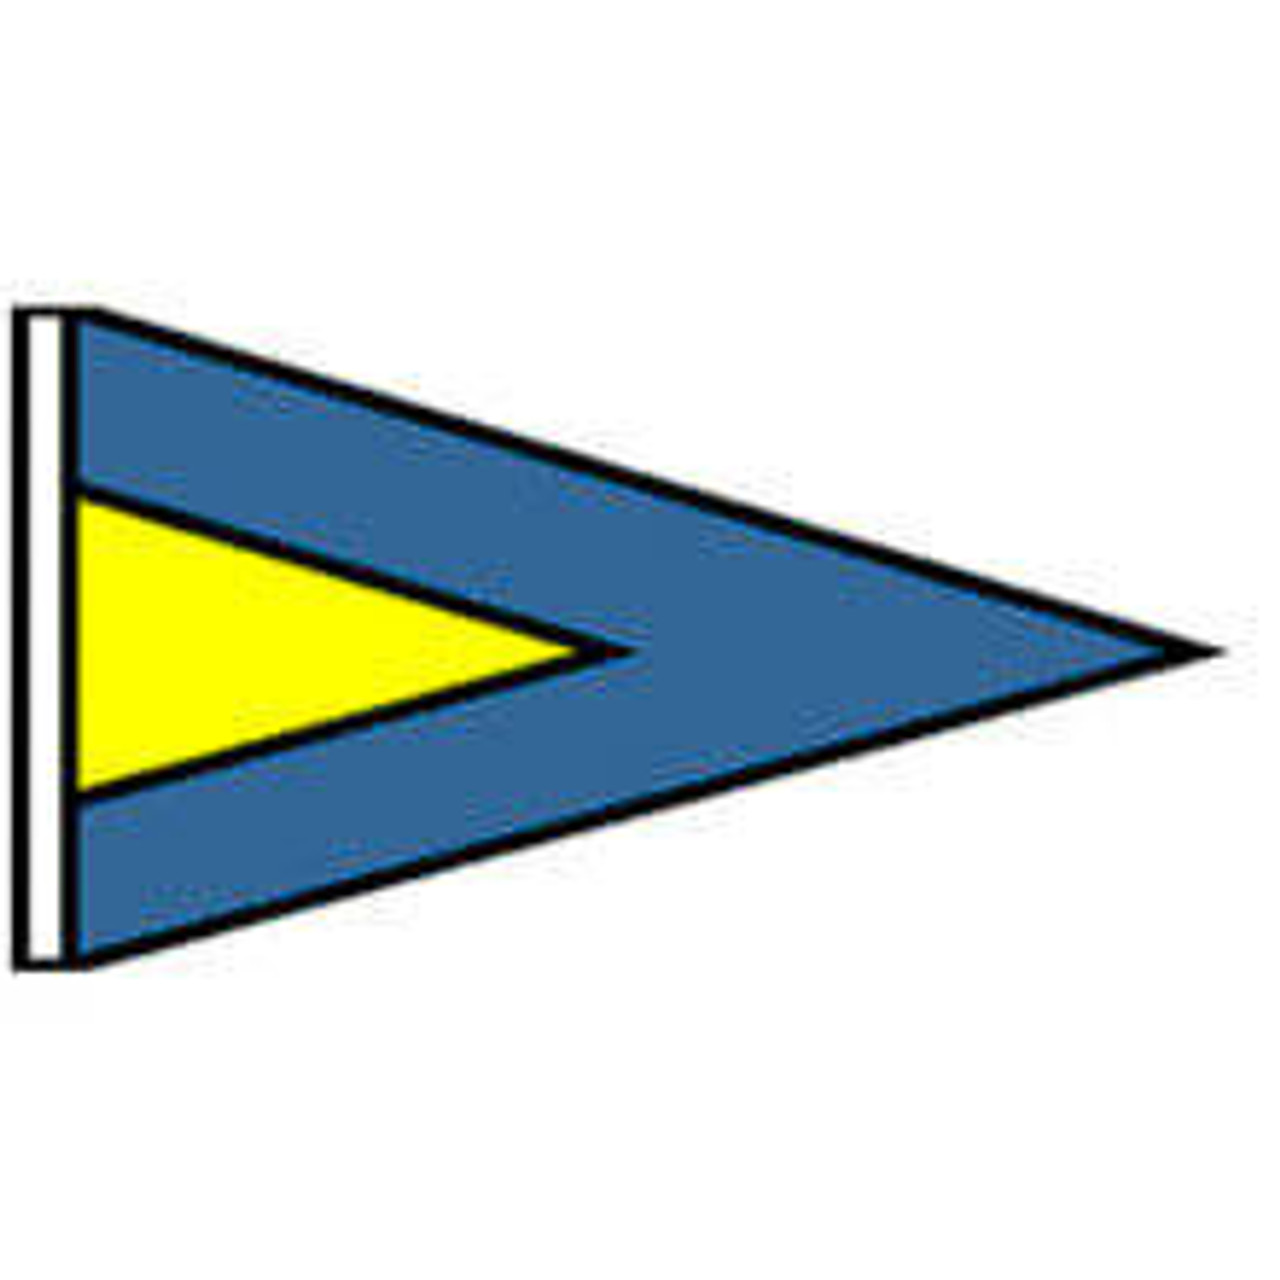 An isosceles triangle flag with a dark blue background and a smaller yellow triangle on the inside left.